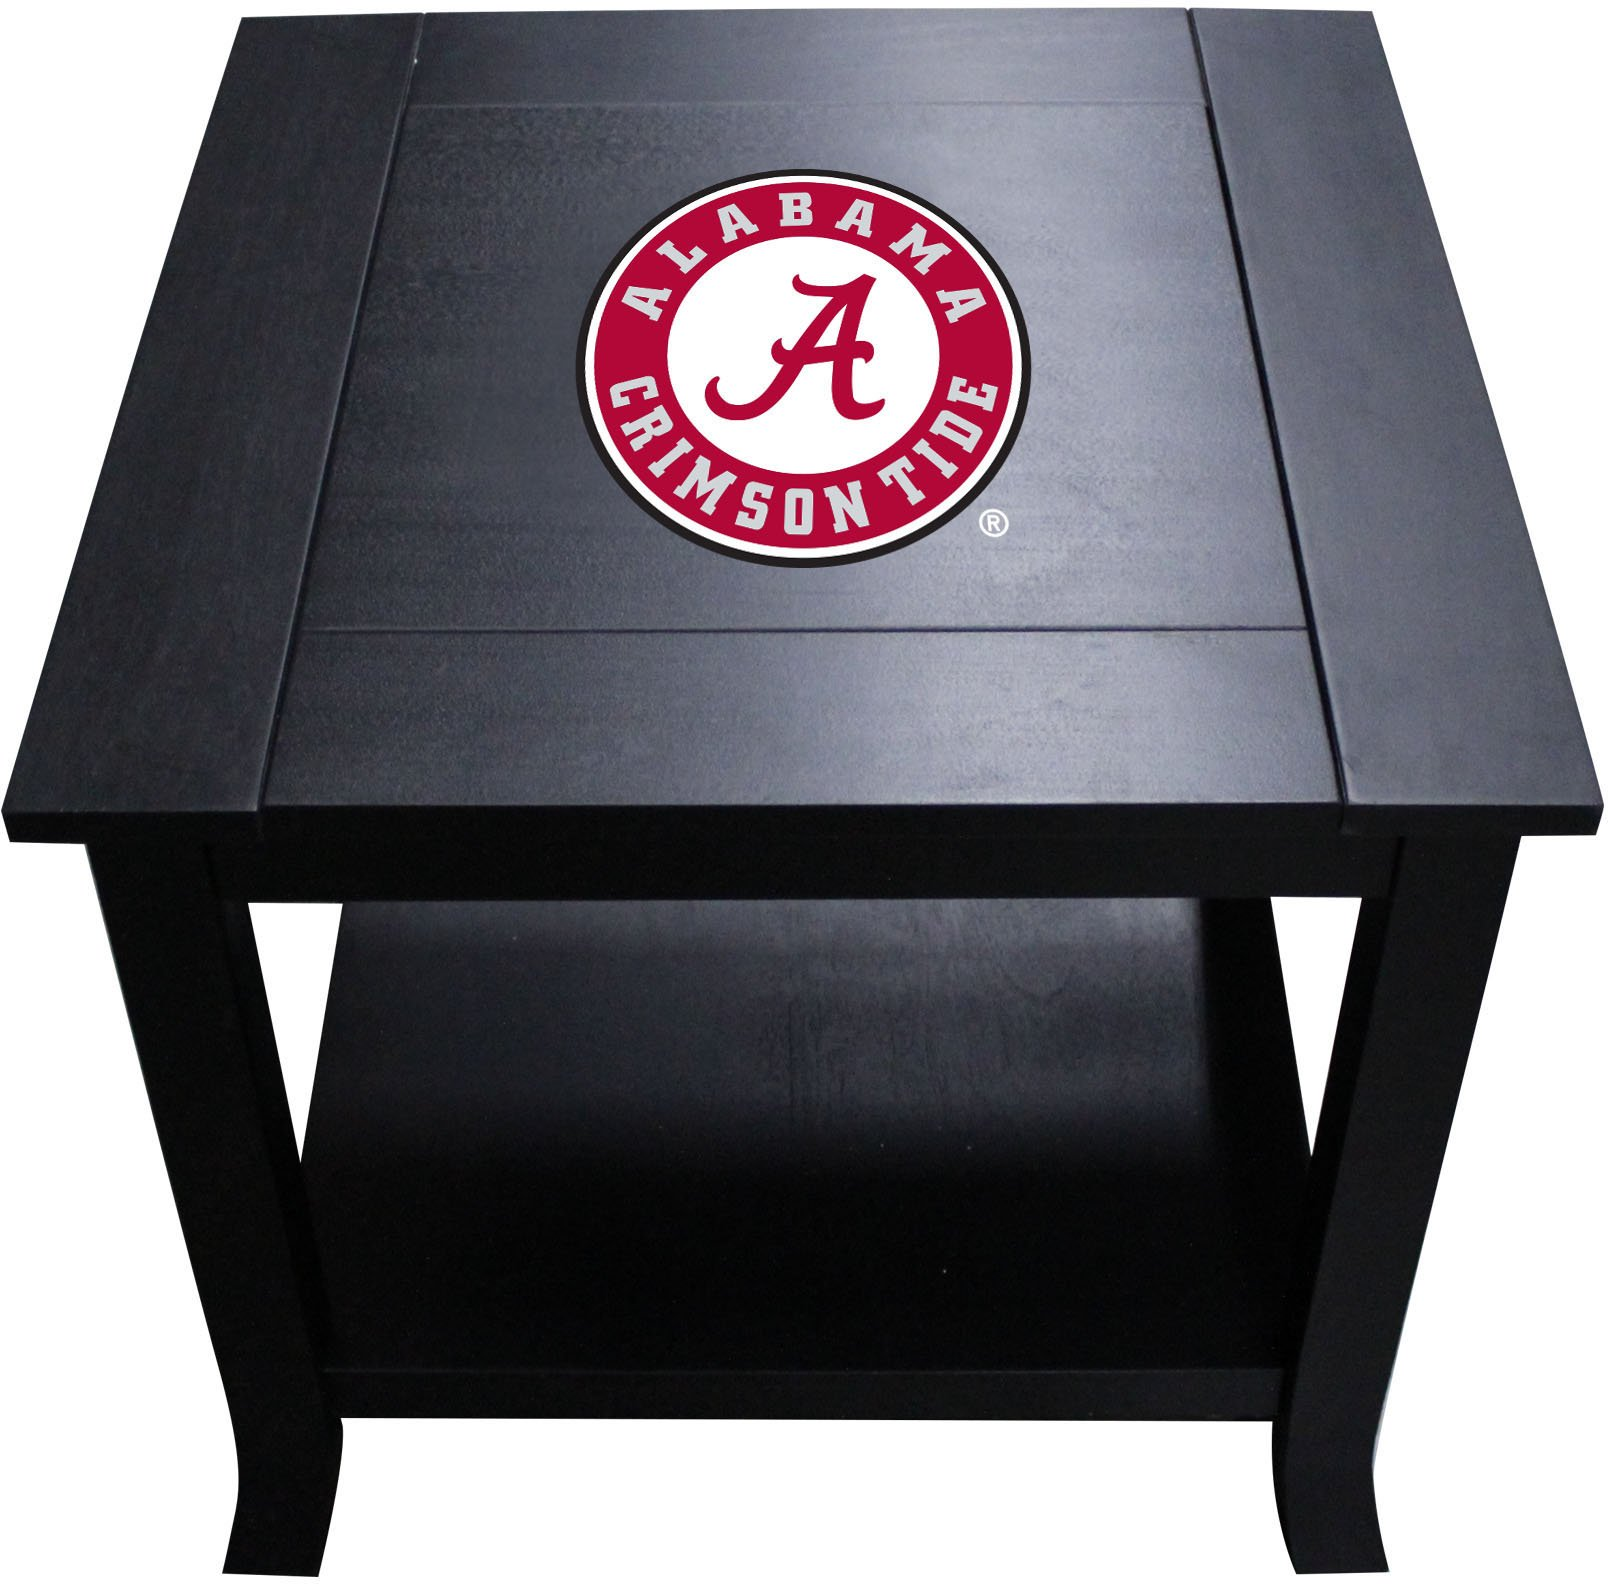 Imperial Officially Licensed NCAA Furniture: Hardwood Side/End Table, Alabama Crimson Tide by Imperial